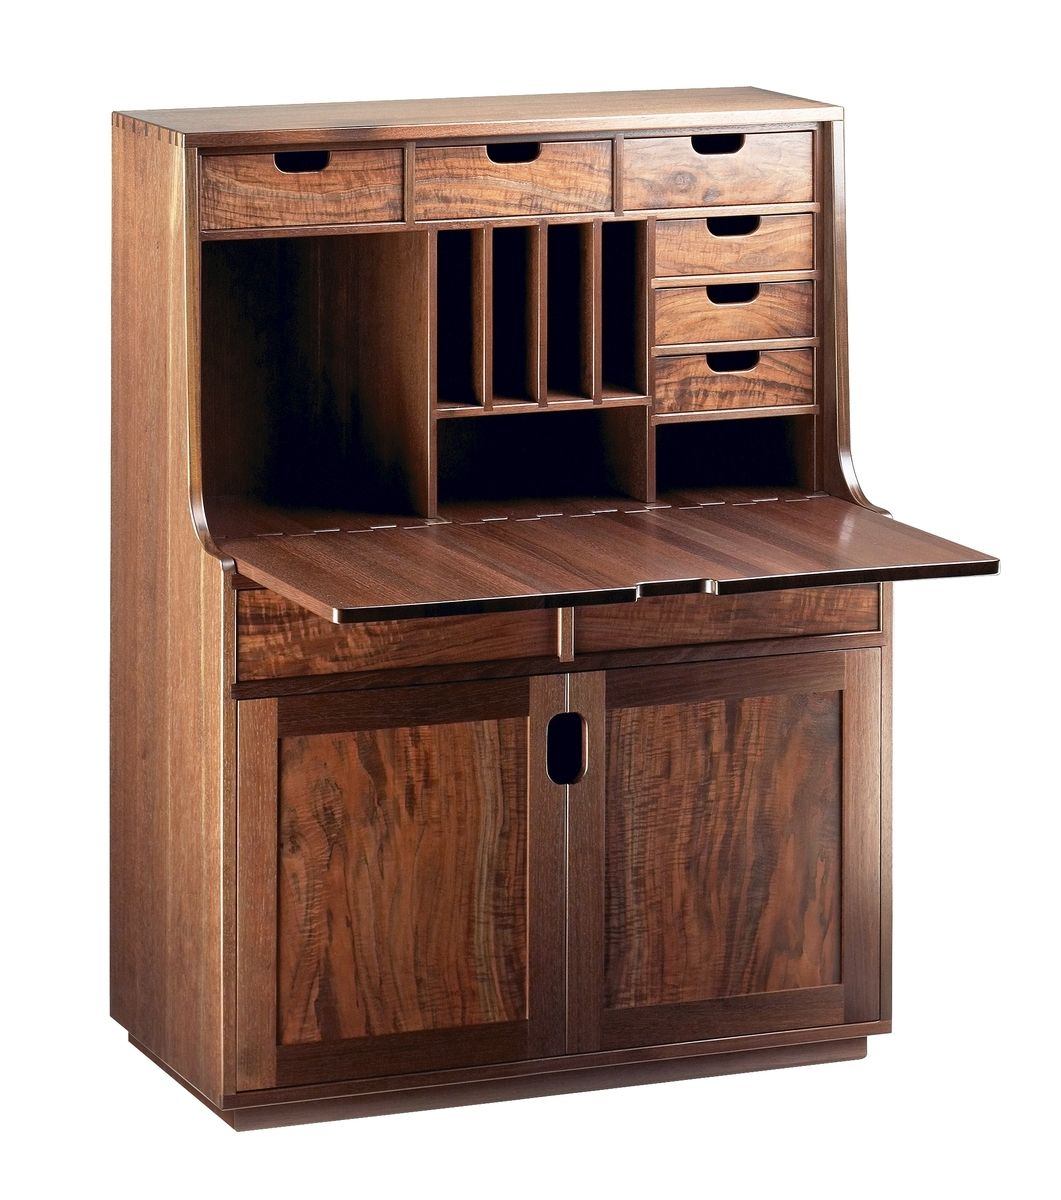 Contemporary Secretary Desk Wooden With Storage Laval By. Contemporary Secretary Desk   Best interior design and